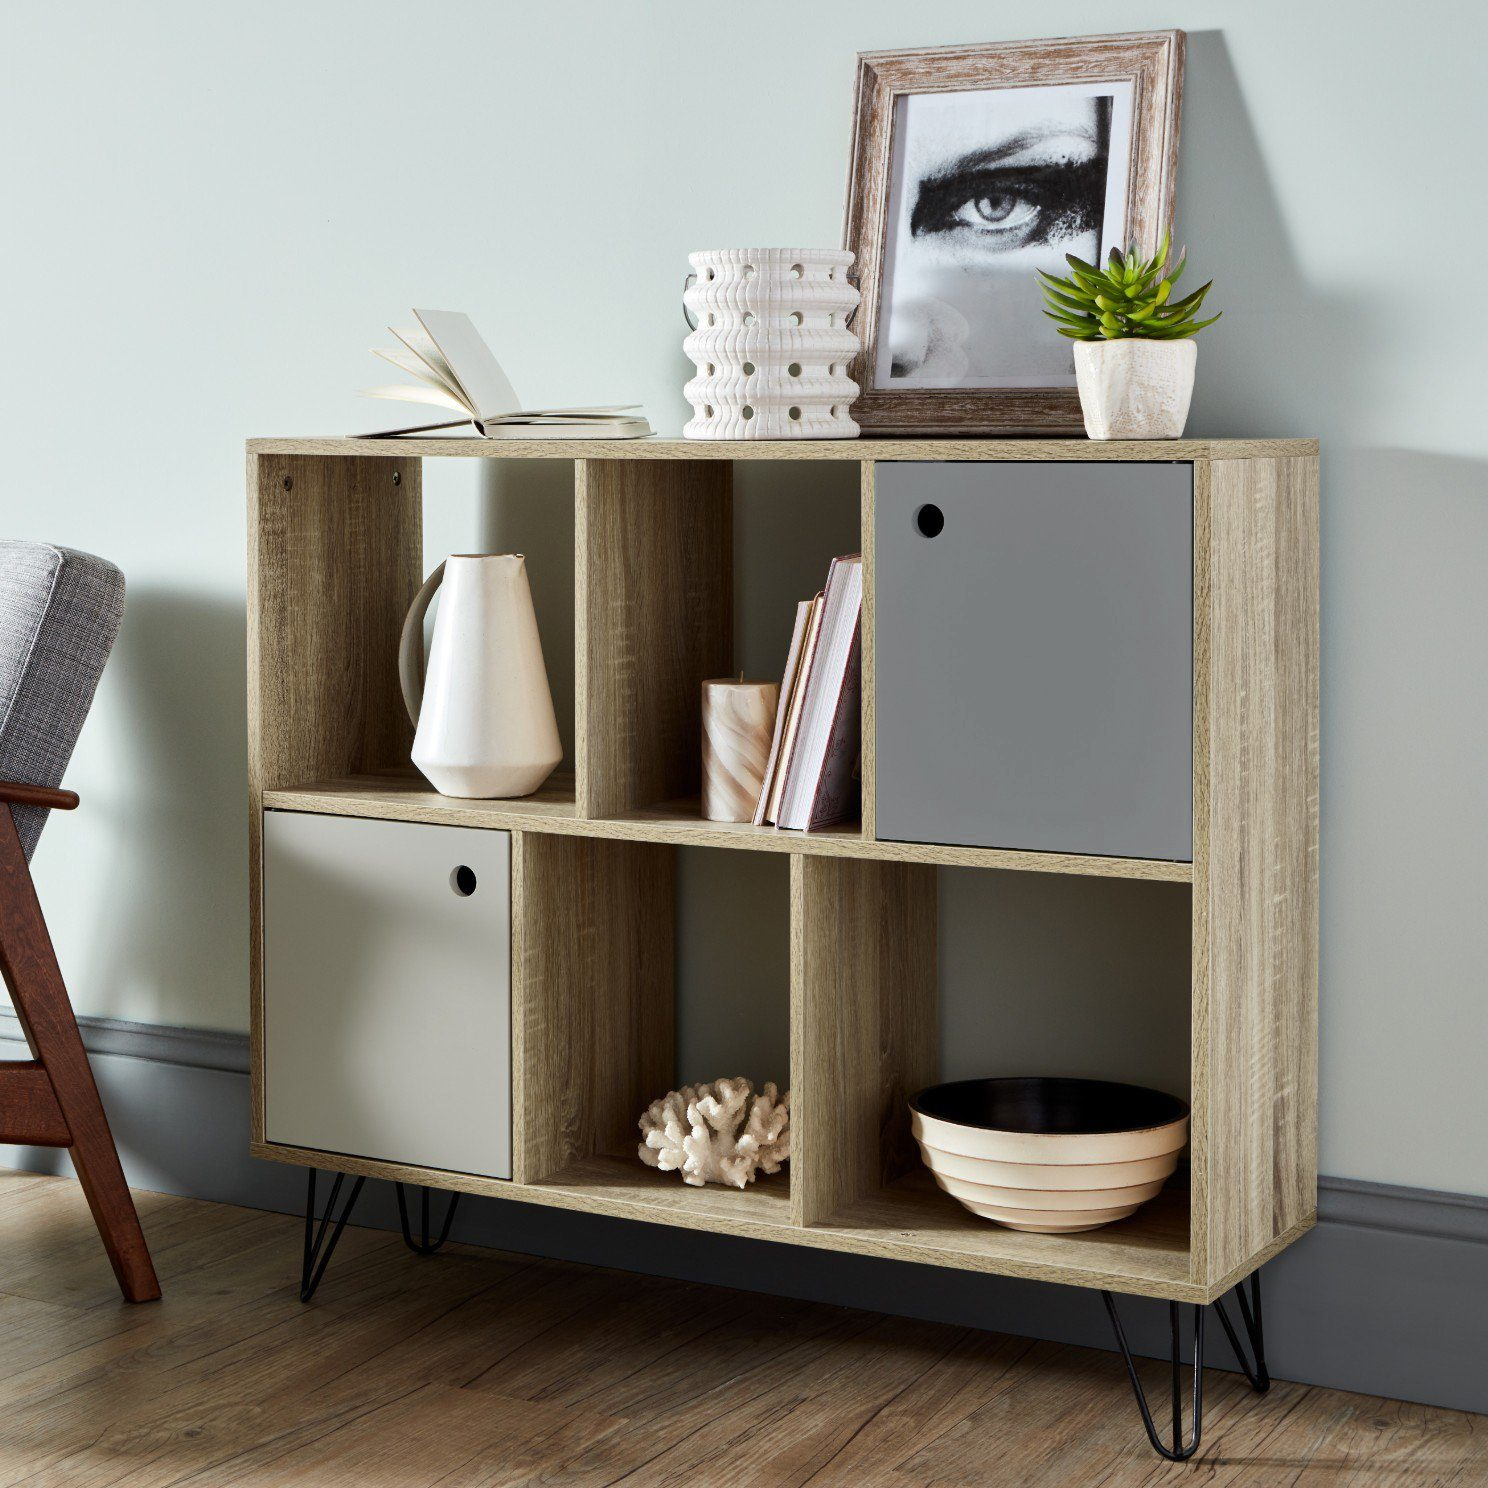 Anderson Oak Effect Mid Century Modern storage unit with grey cupboards - Laura James